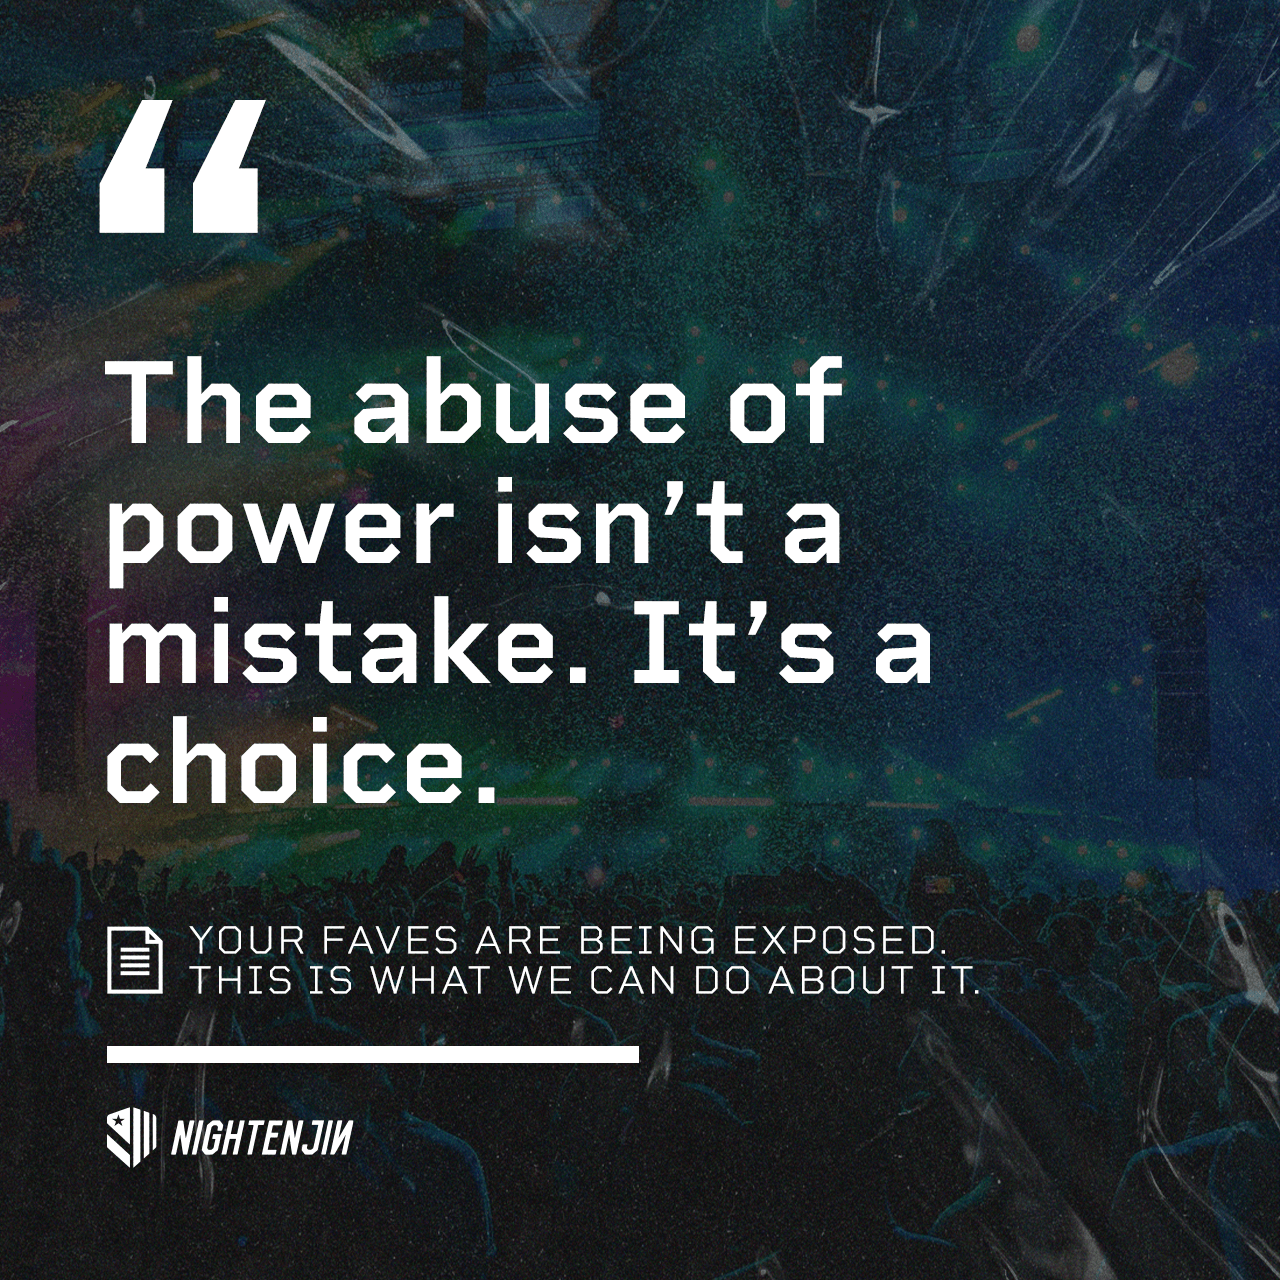 The abuse of power isn't a mistake. It's a choice.